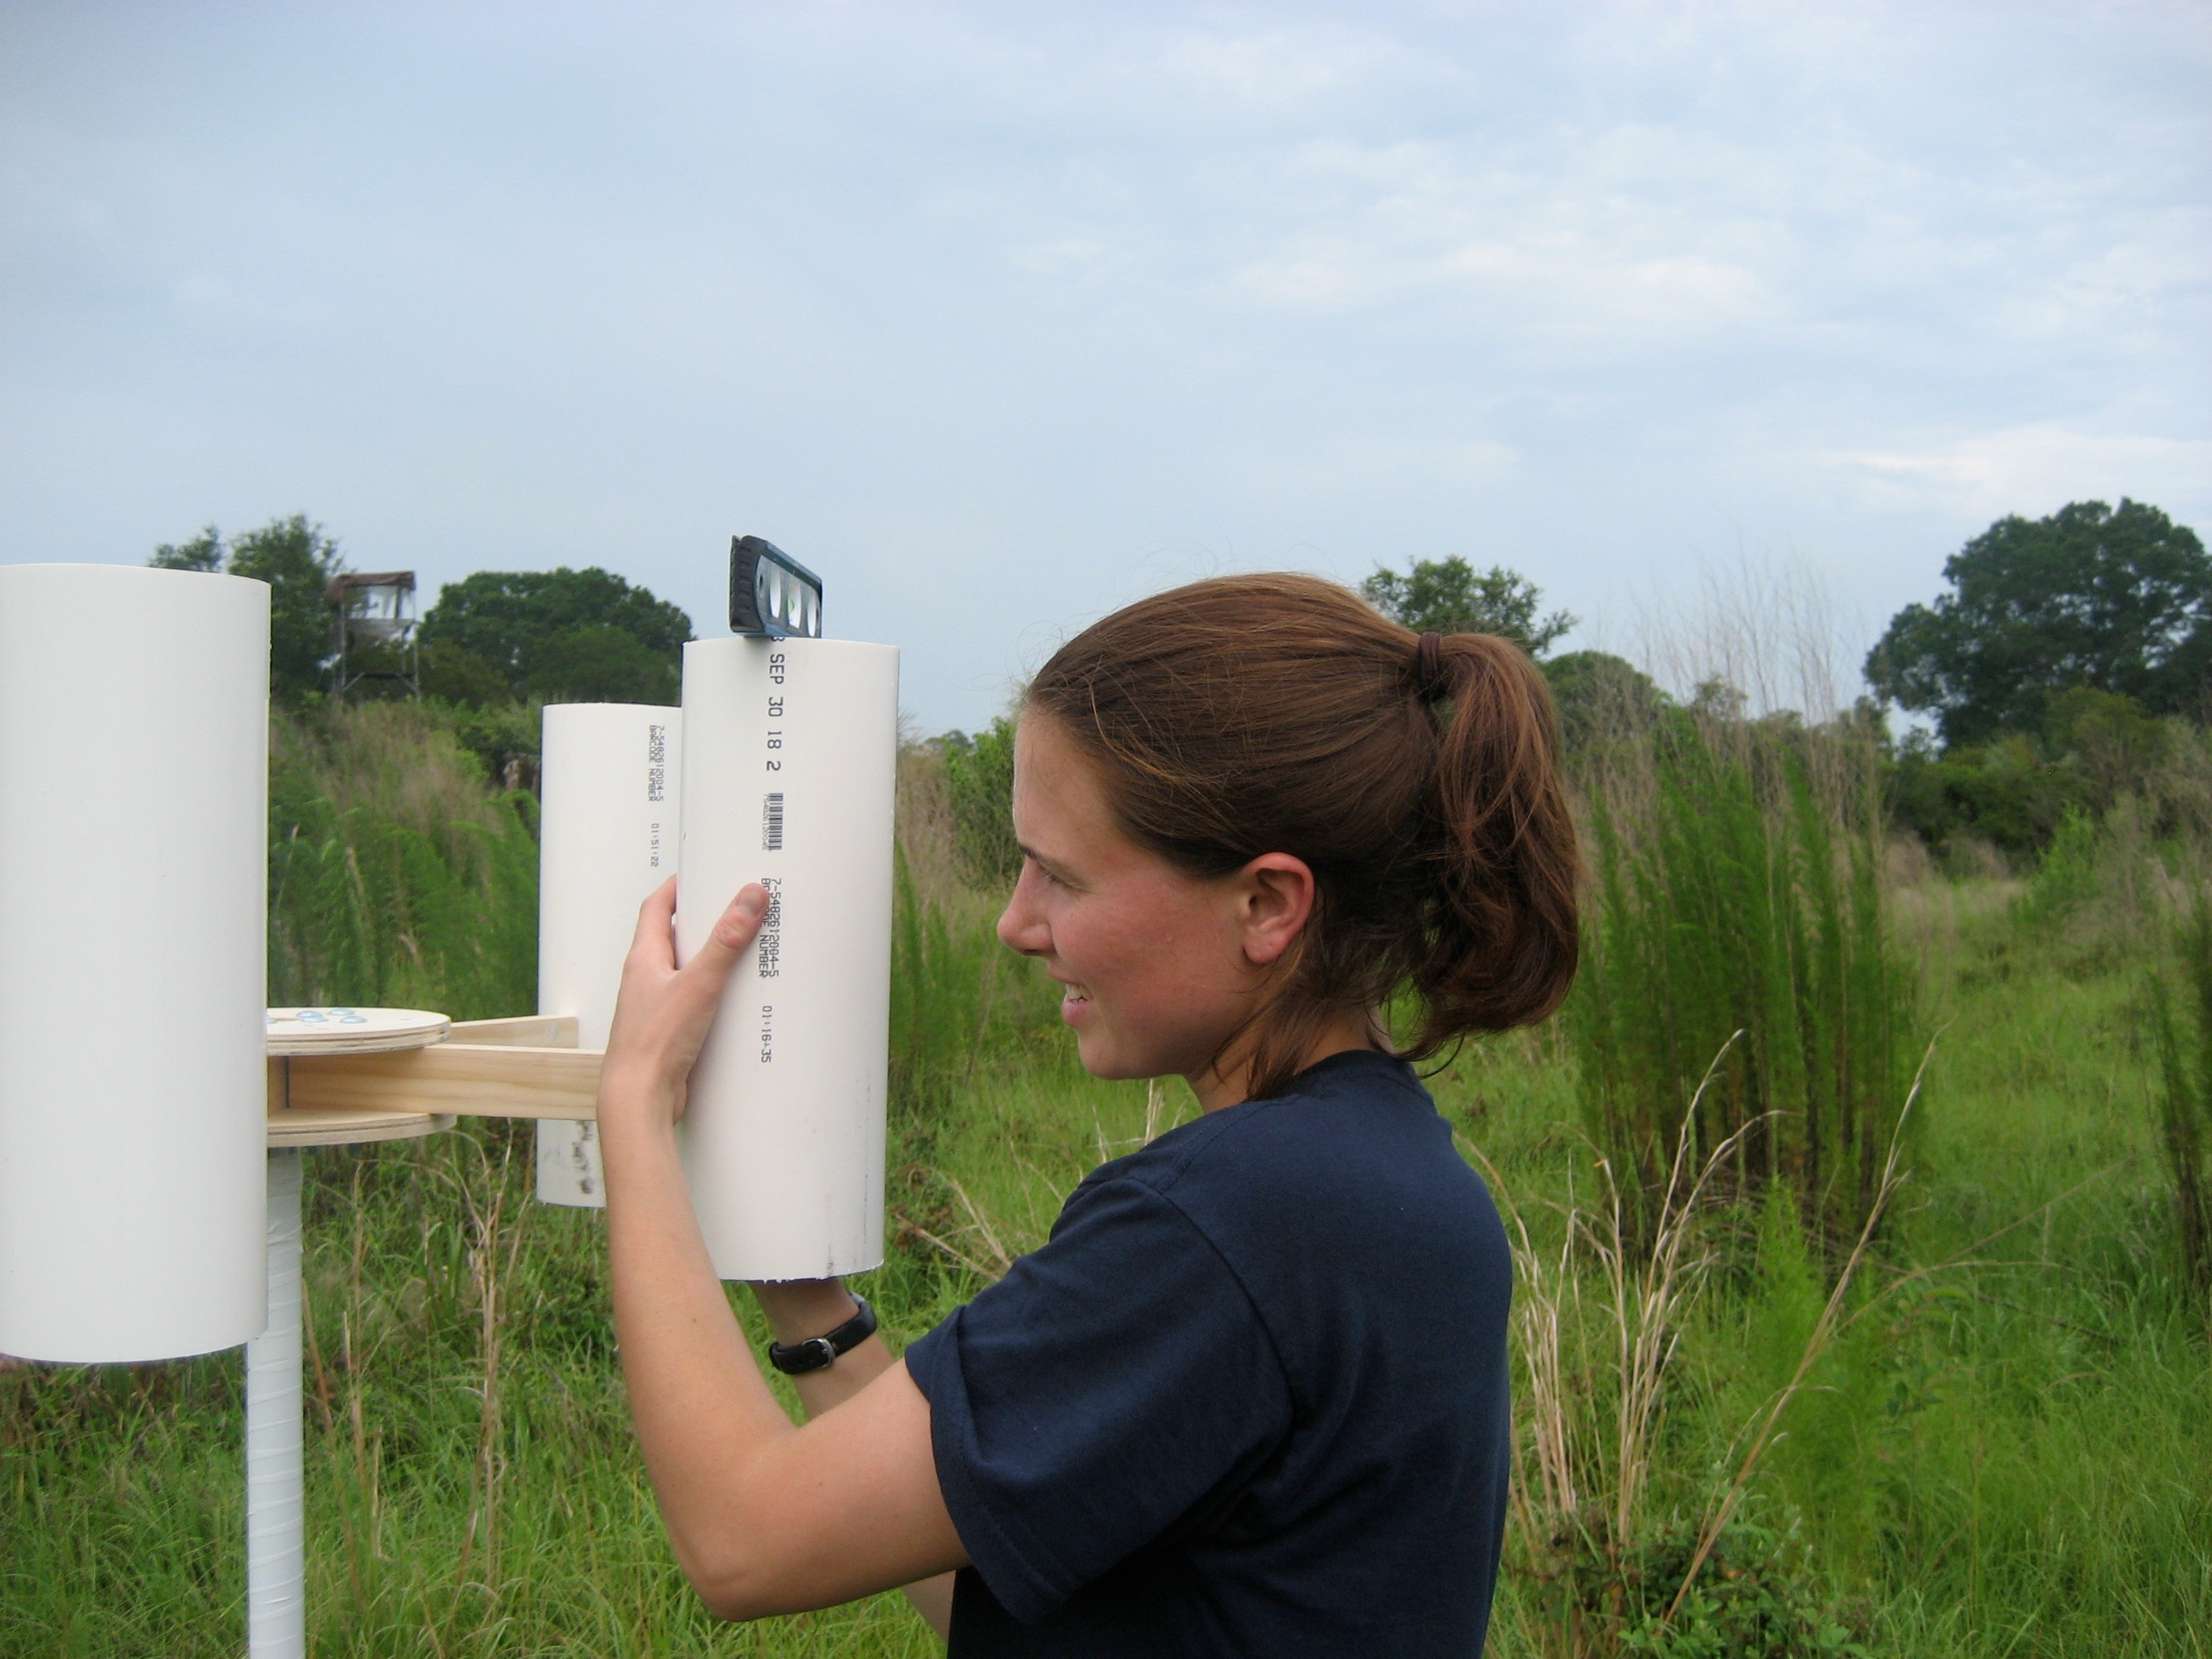 Laura Sherman setting up a sampling tripod to collect precipitation at one of the study sites near Crystal River, Florida. Photo courtesy of Emily White